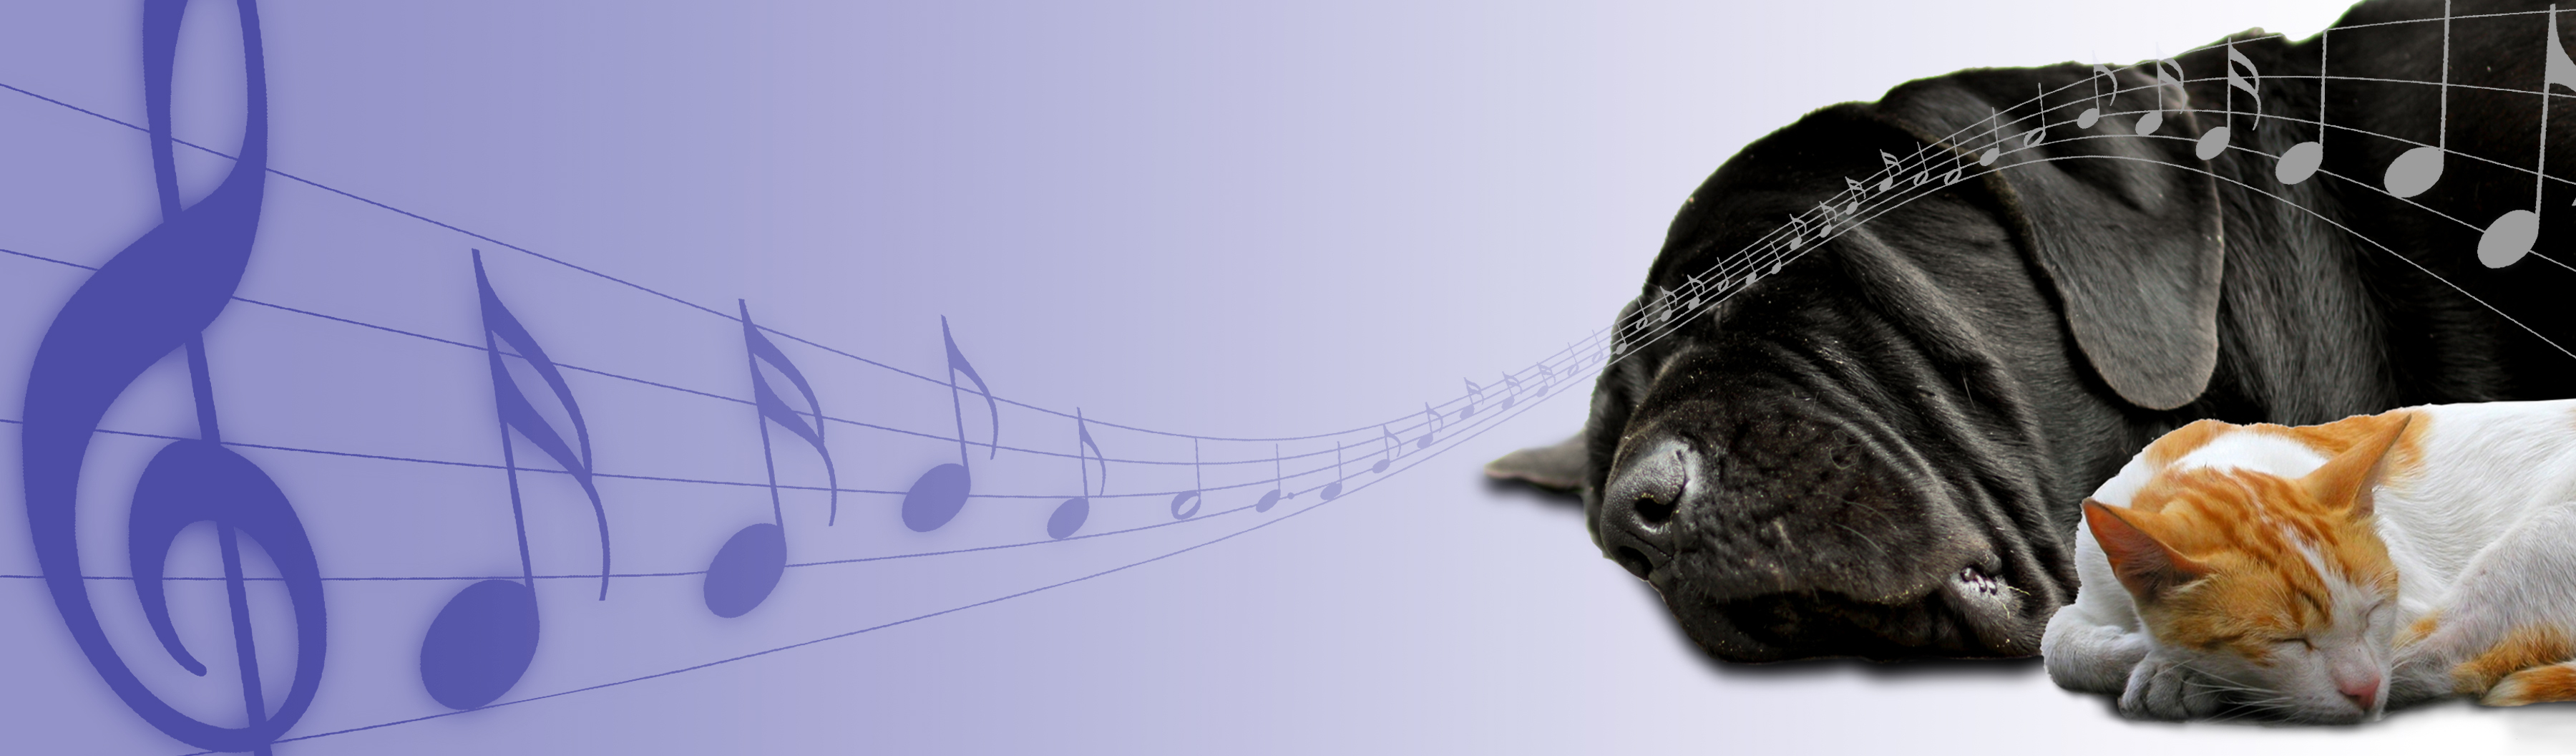 Especial Dogs On Alexa Separation Anxiety Ing Music About Music Rescue Animal Project Ing Music Dogs bark post Calming Music For Dogs